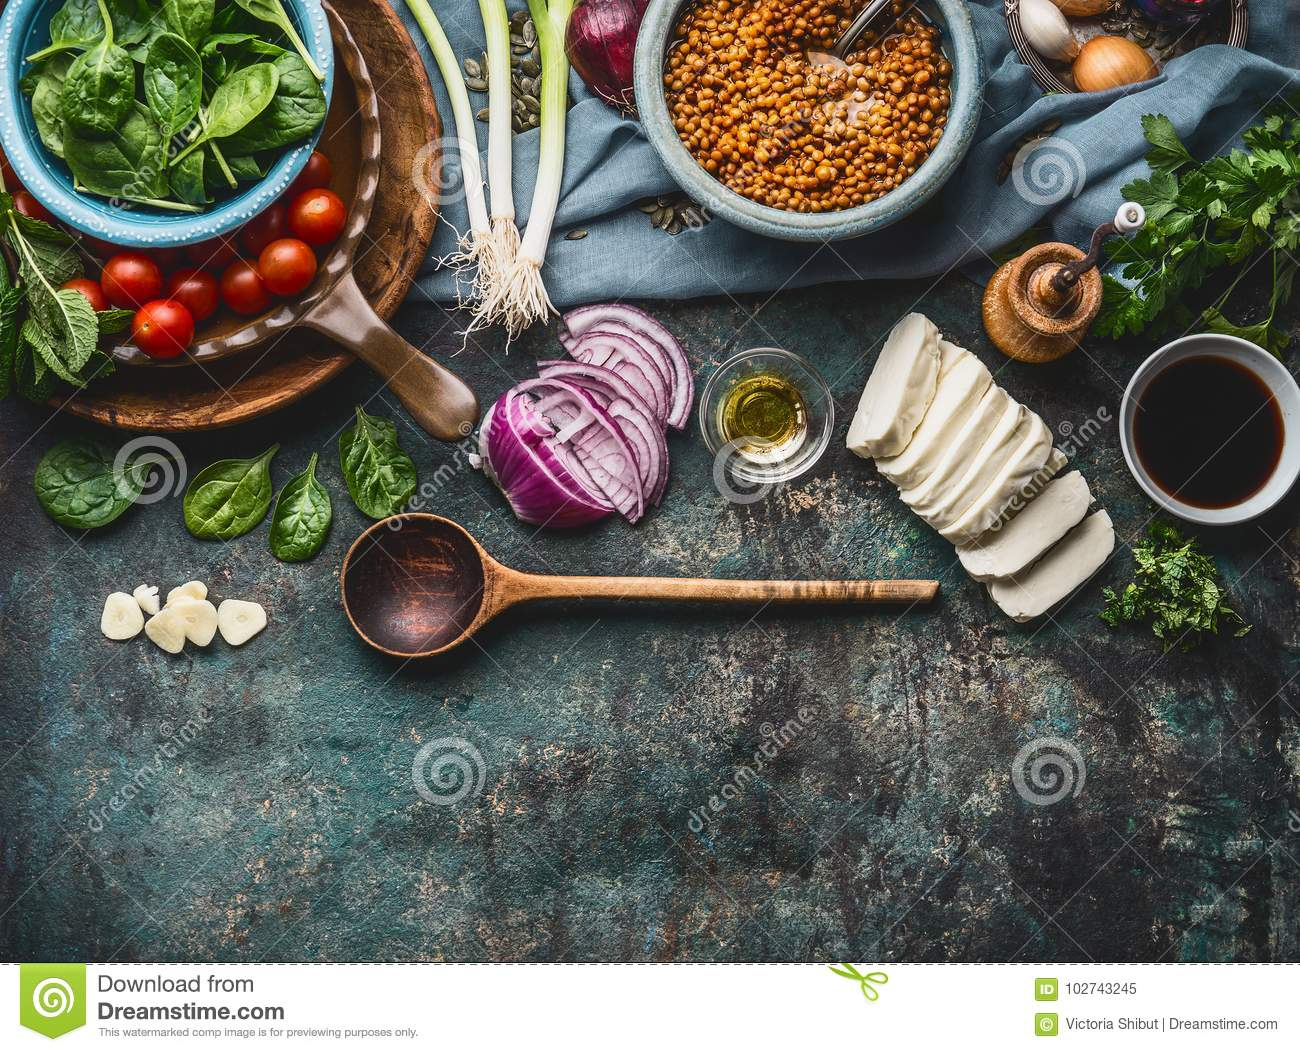 Vegetarian ingredients for tasty lentil dishes on rustic kitchen table background with cooking spoon and utensils, top view, borde